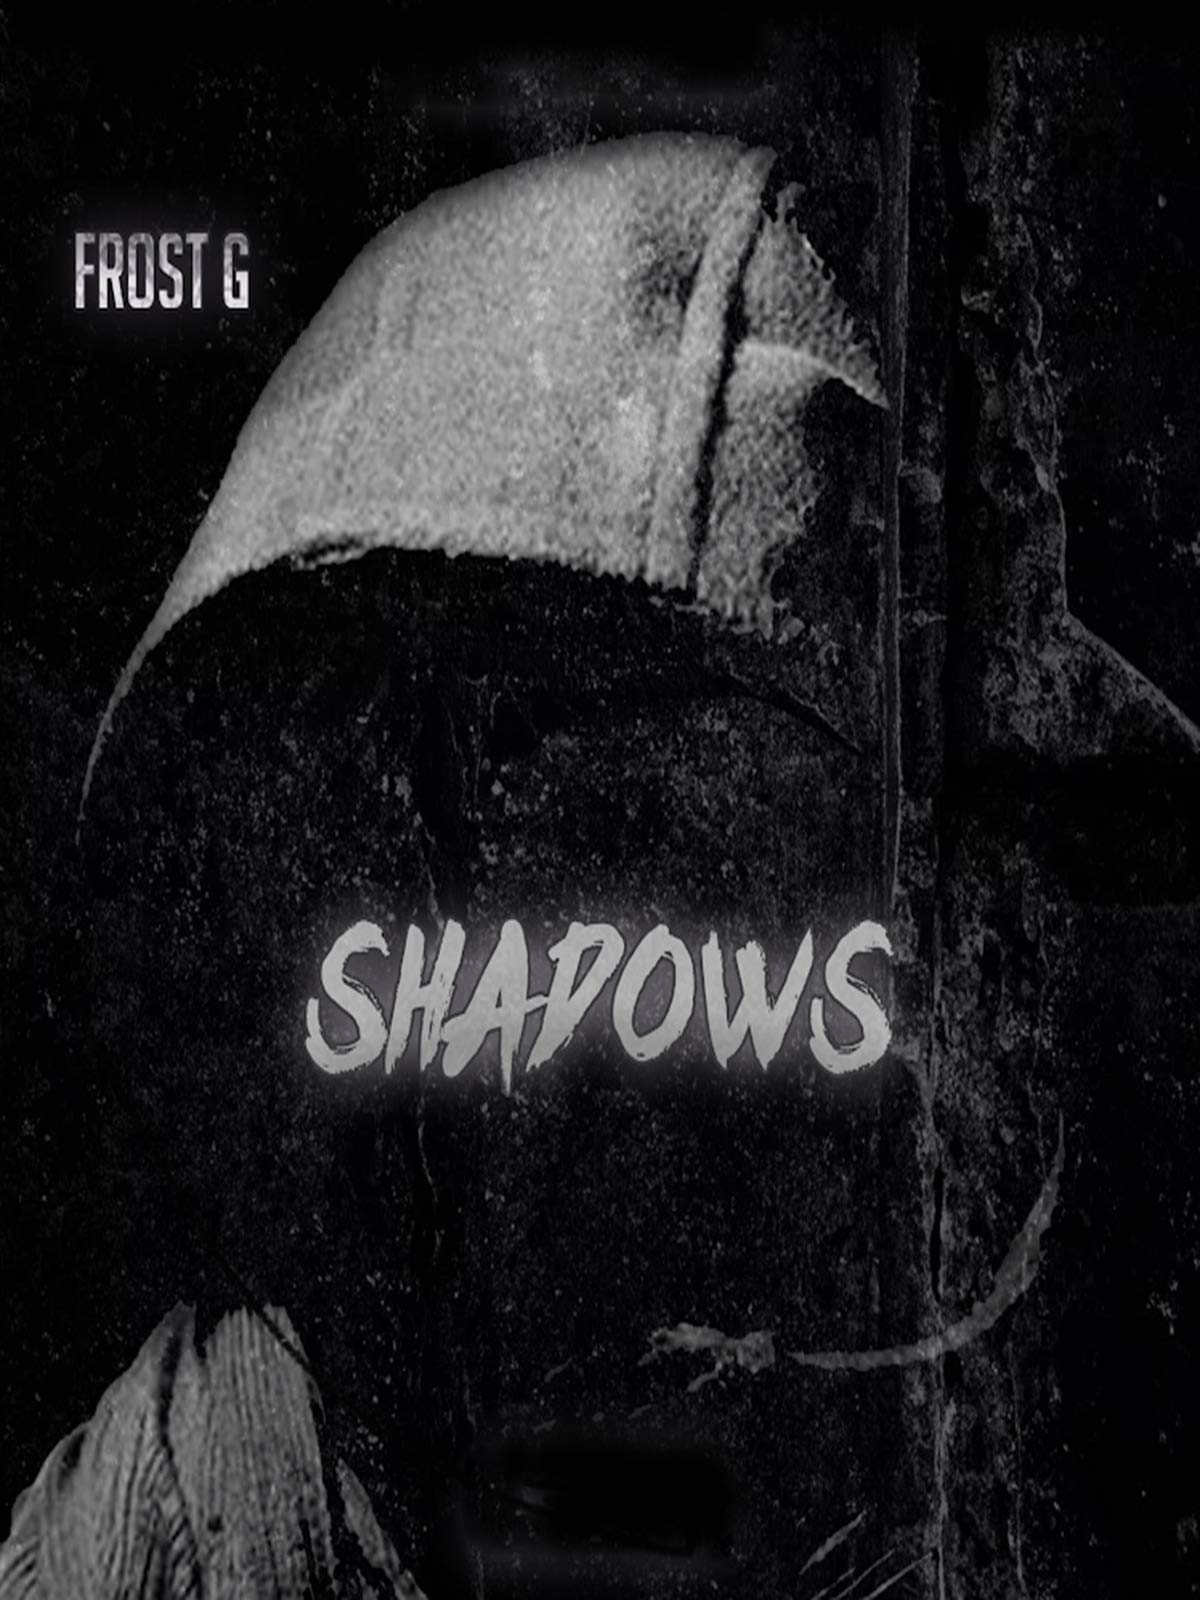 Frost G - Shadows on Amazon Prime Instant Video UK